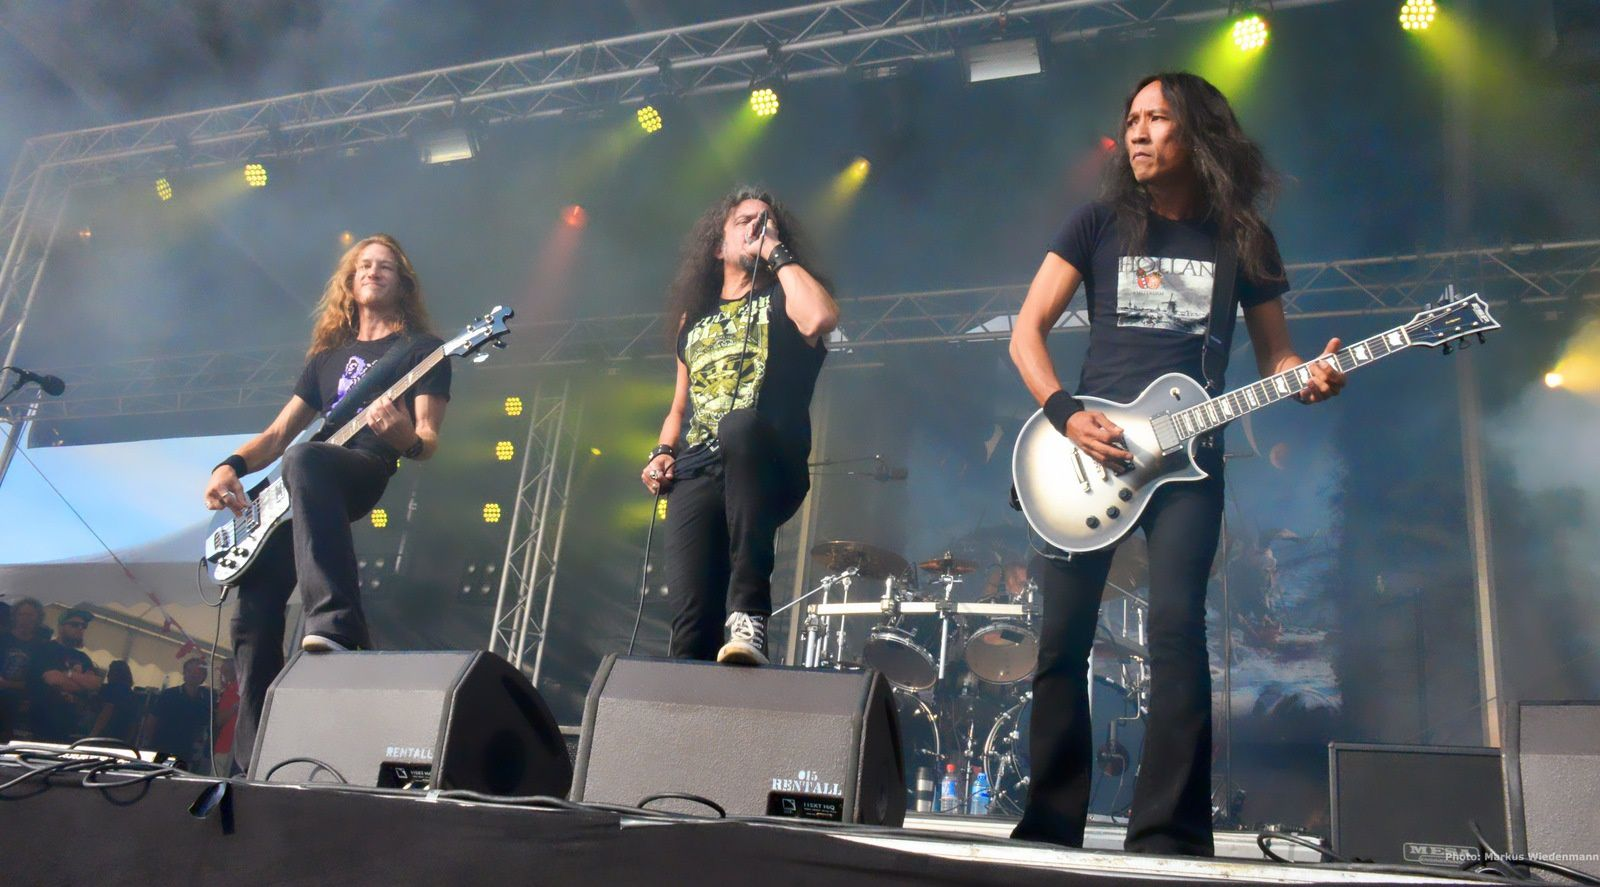 Live review DEATH ANGEL, Schollenpop Festival, The Hague, 01.08.2015